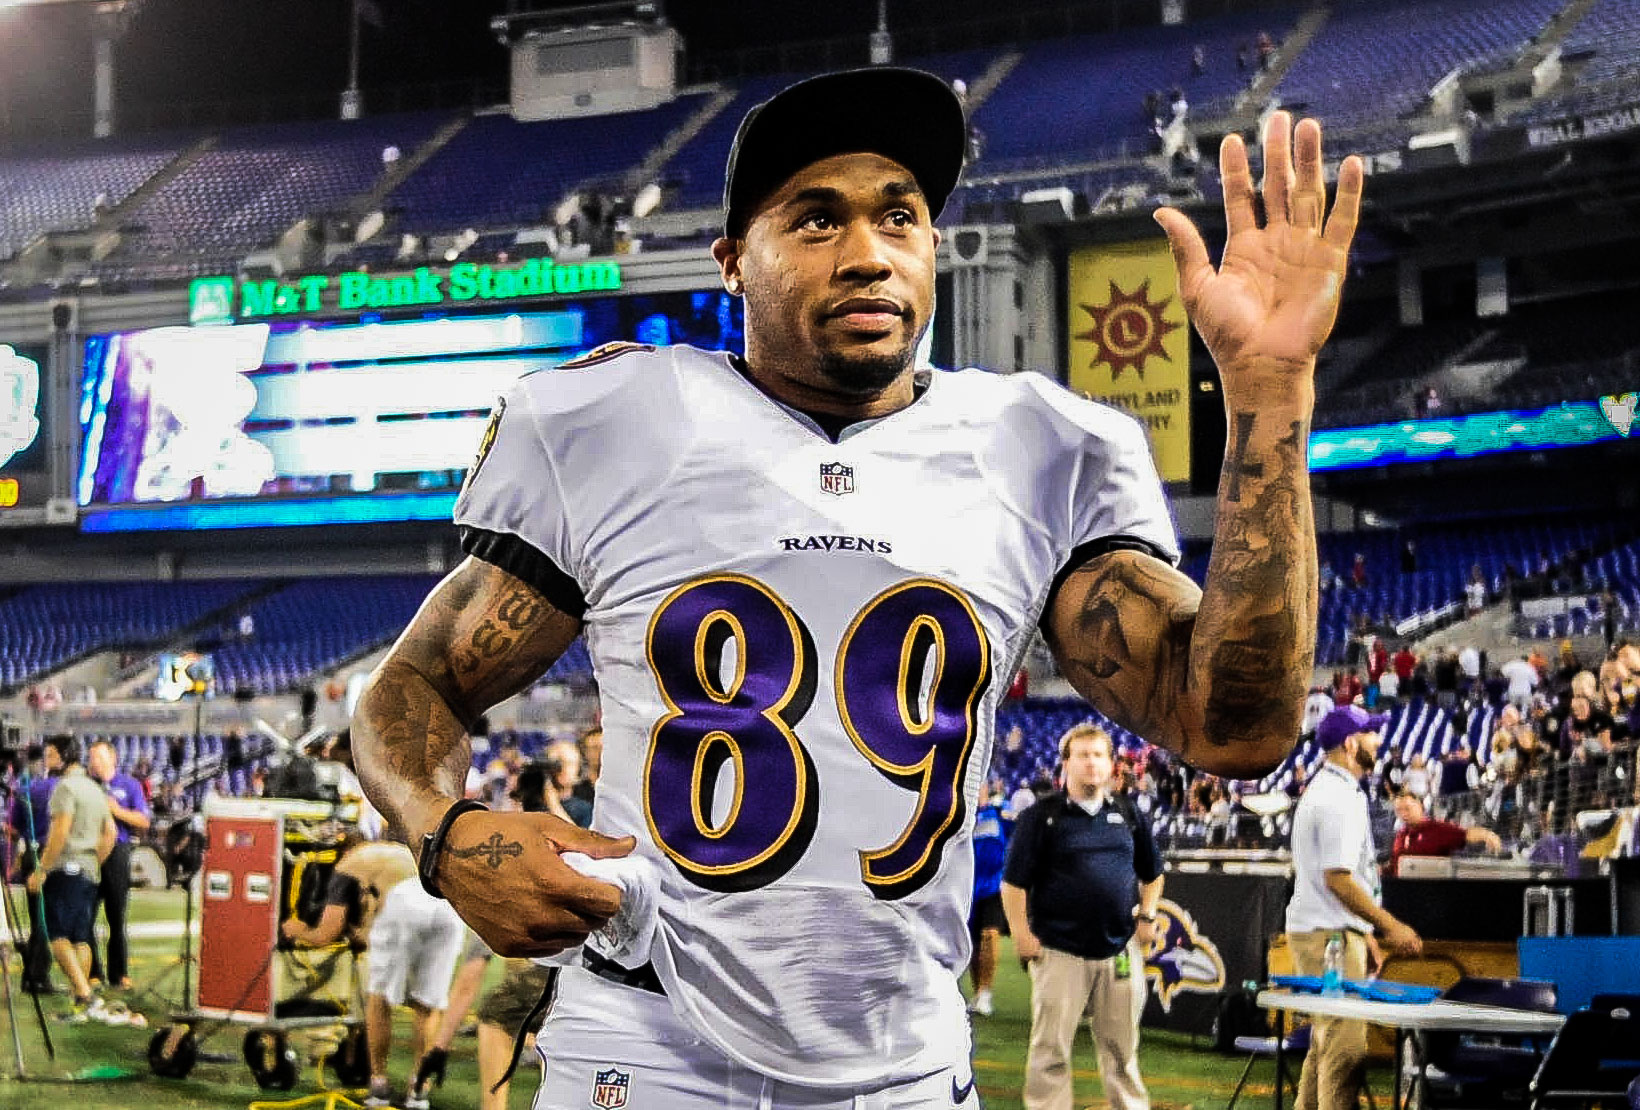 Steve Smith is excited to be with the Ravens. (USATSI)